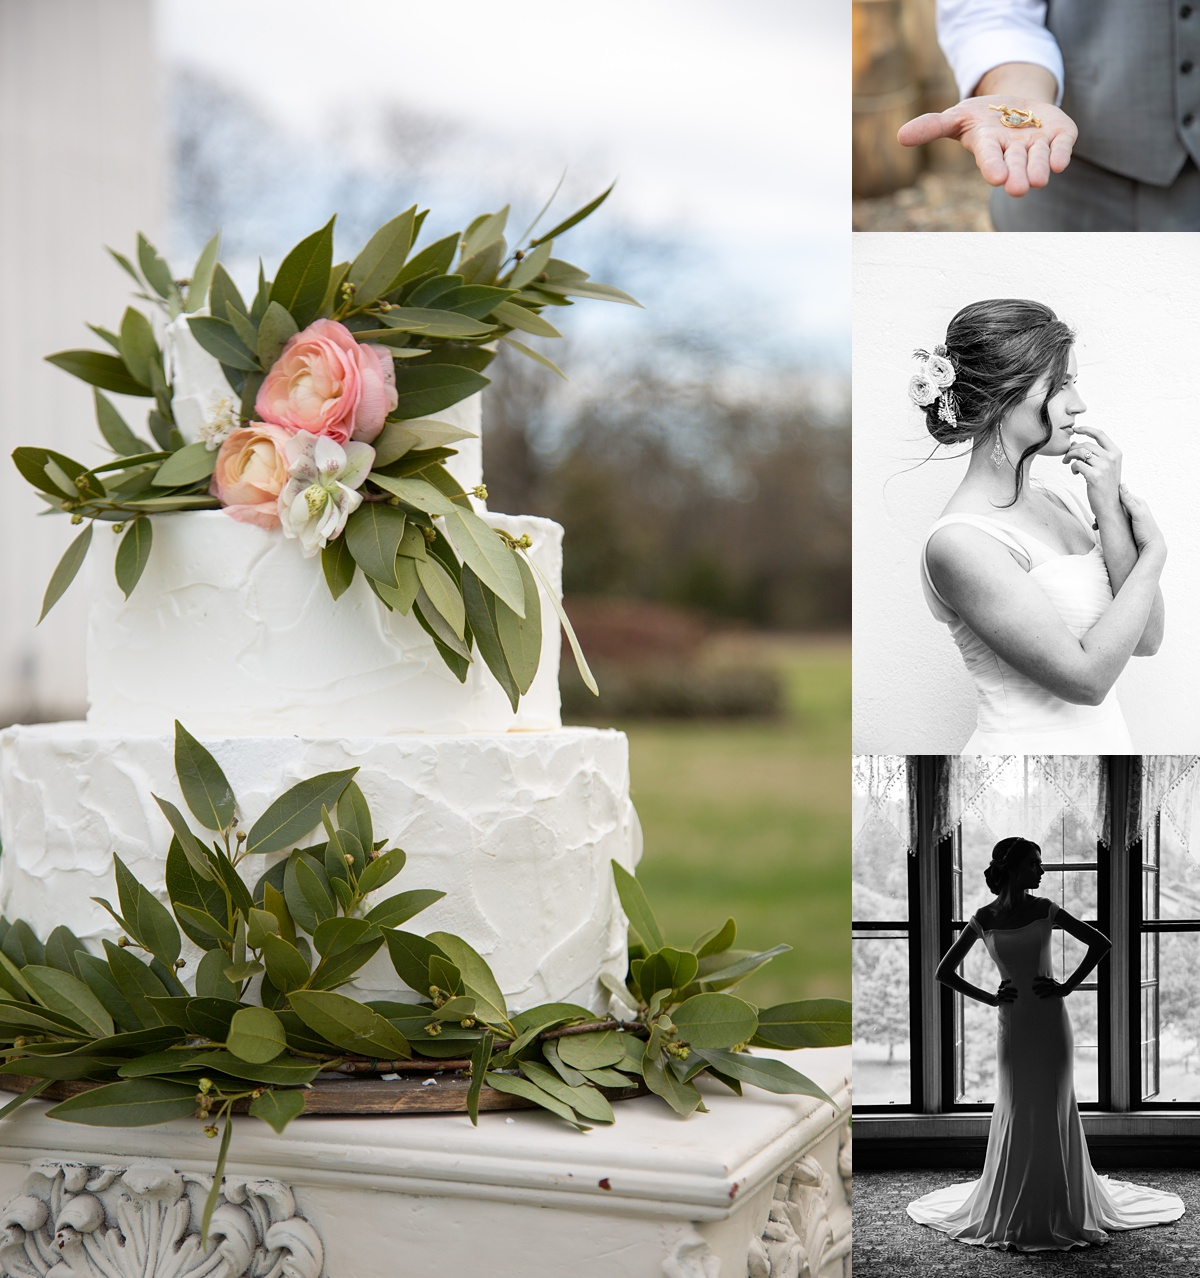 collage of photos with wedding cake, bride profile, bride silhouette, and groom with ring